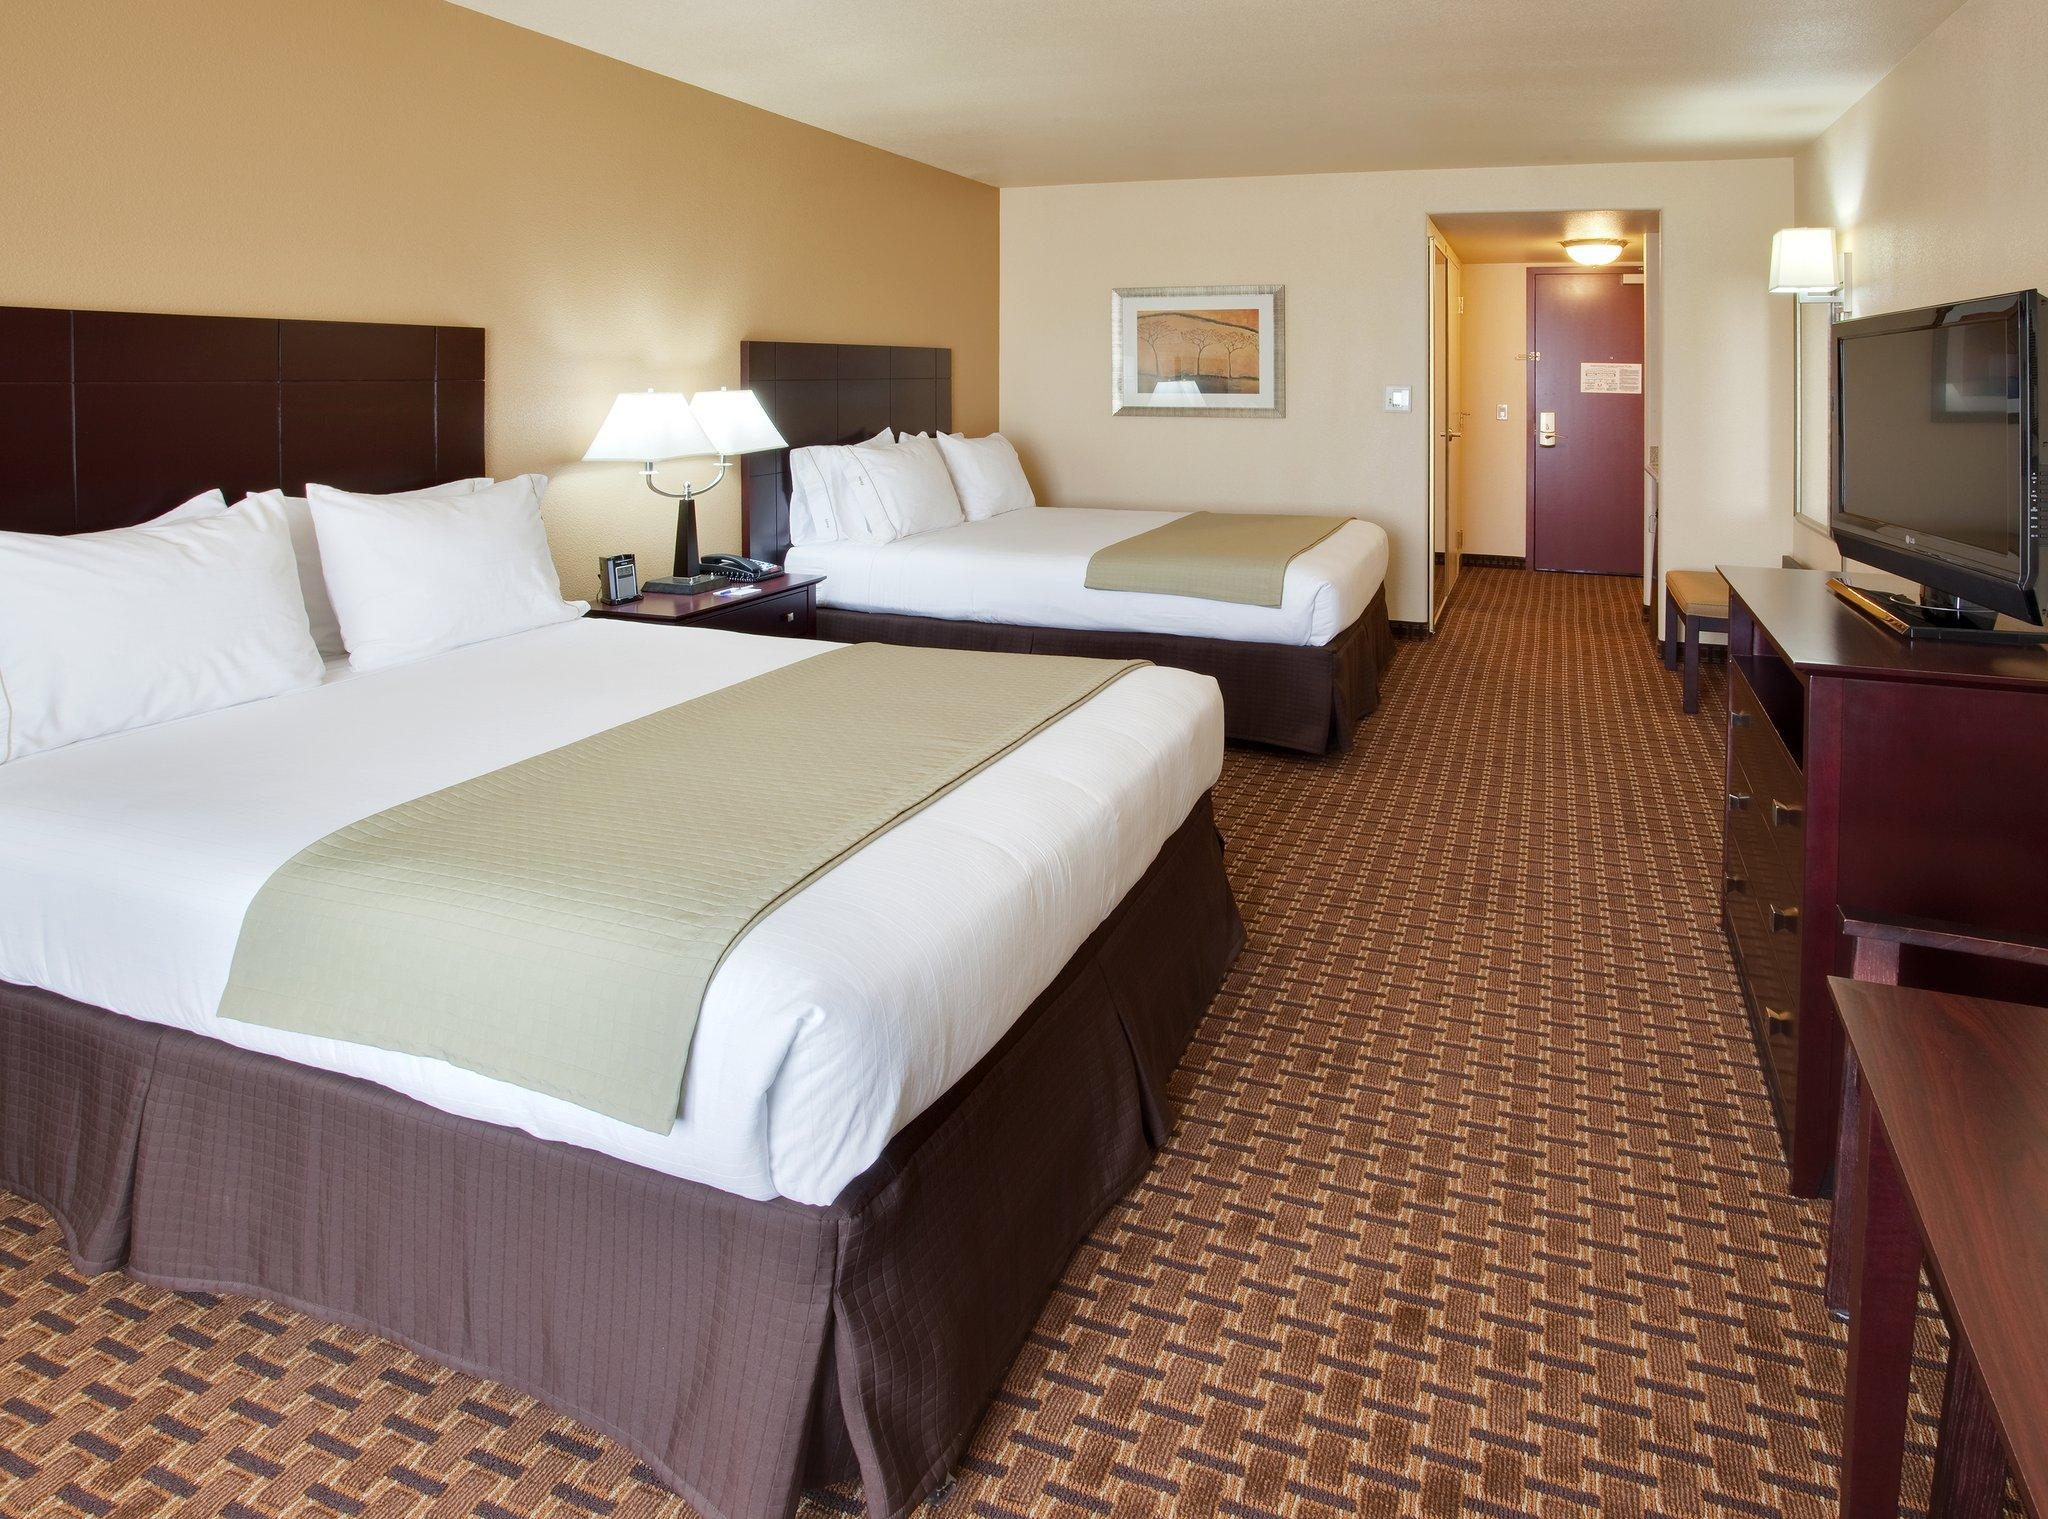 Holiday Inn Express Hotel & Suites Dinuba West, Tulare